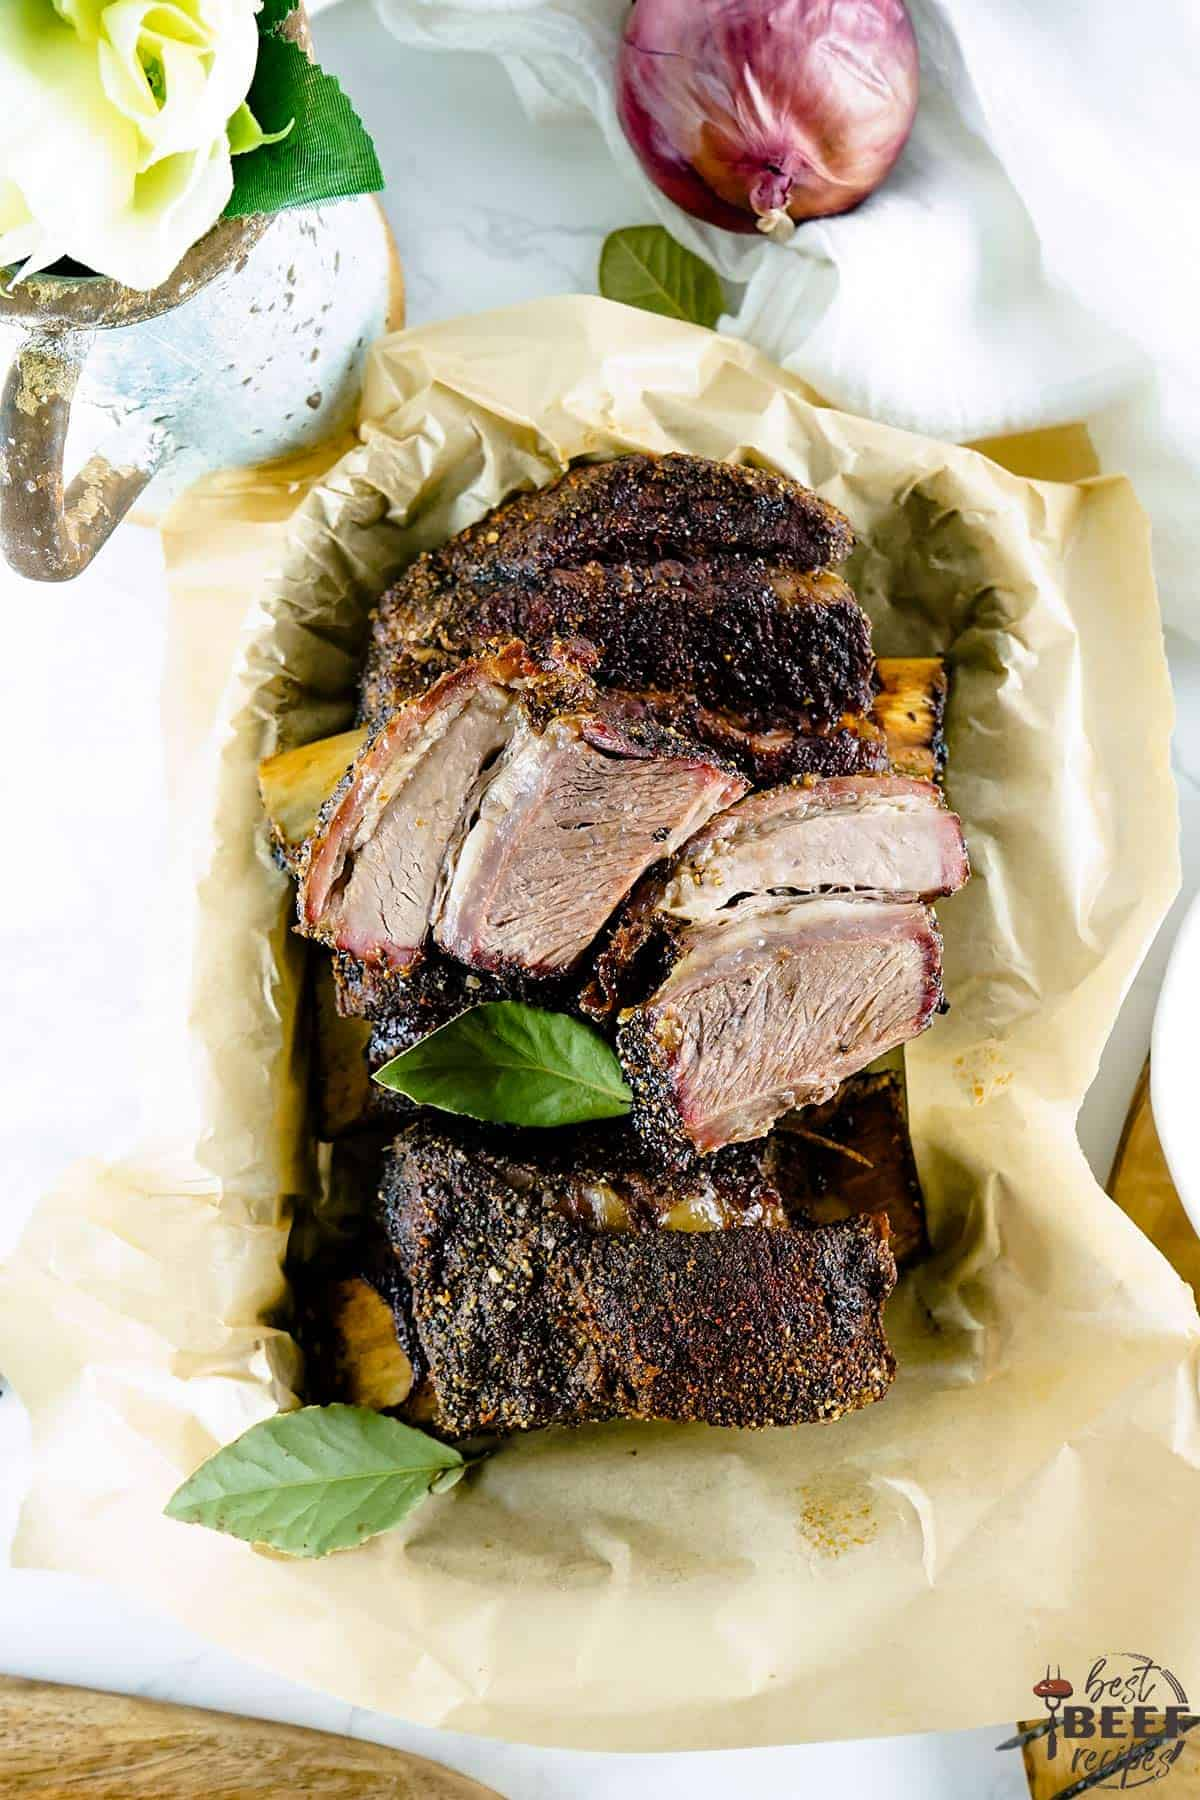 Short ribs in a parchment paper-lined basket